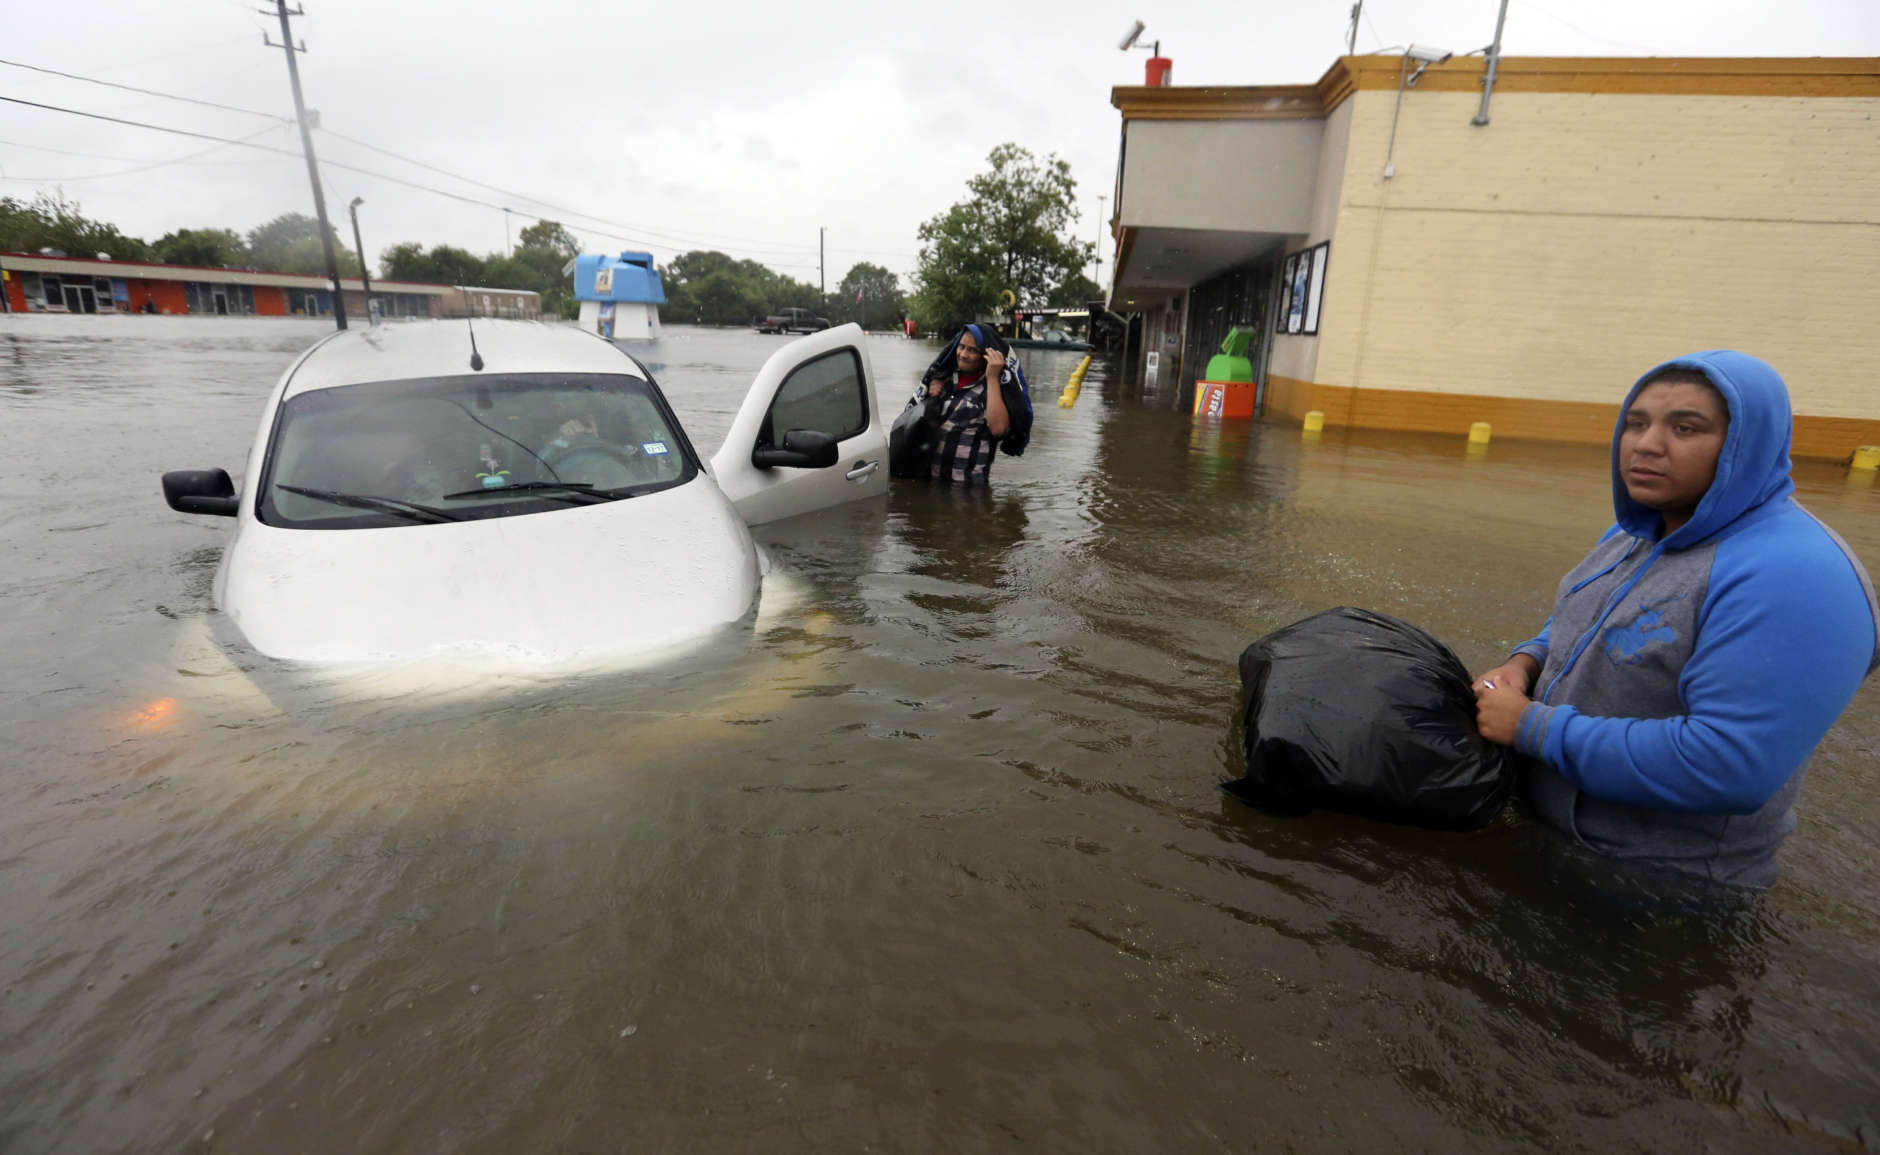 Conception Casa, center, and his friend Jose Martinez, right, check on Rhonda Worthington after her car become stuck in rising floodwaters from Tropical Storm Harvey in Houston, Texas, Monday, Aug. 28, 2017. The two men were evacuating their home that had become flooded when they encountered Worthington's car floating off the road. (AP Photo/LM Otero)